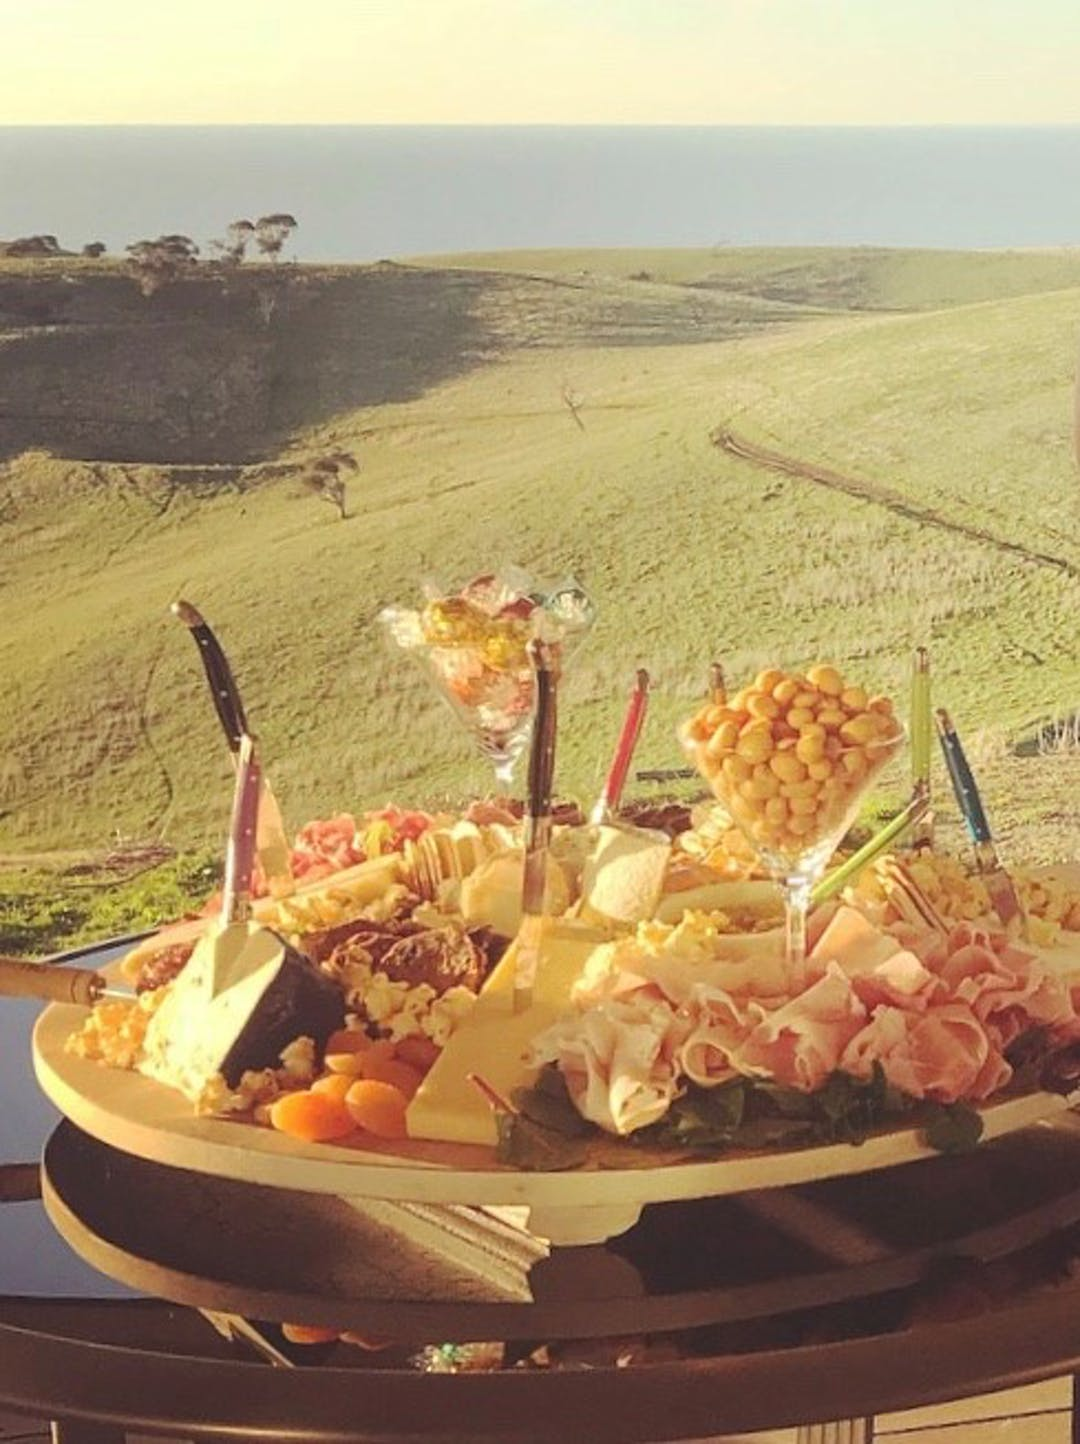 Platter and view